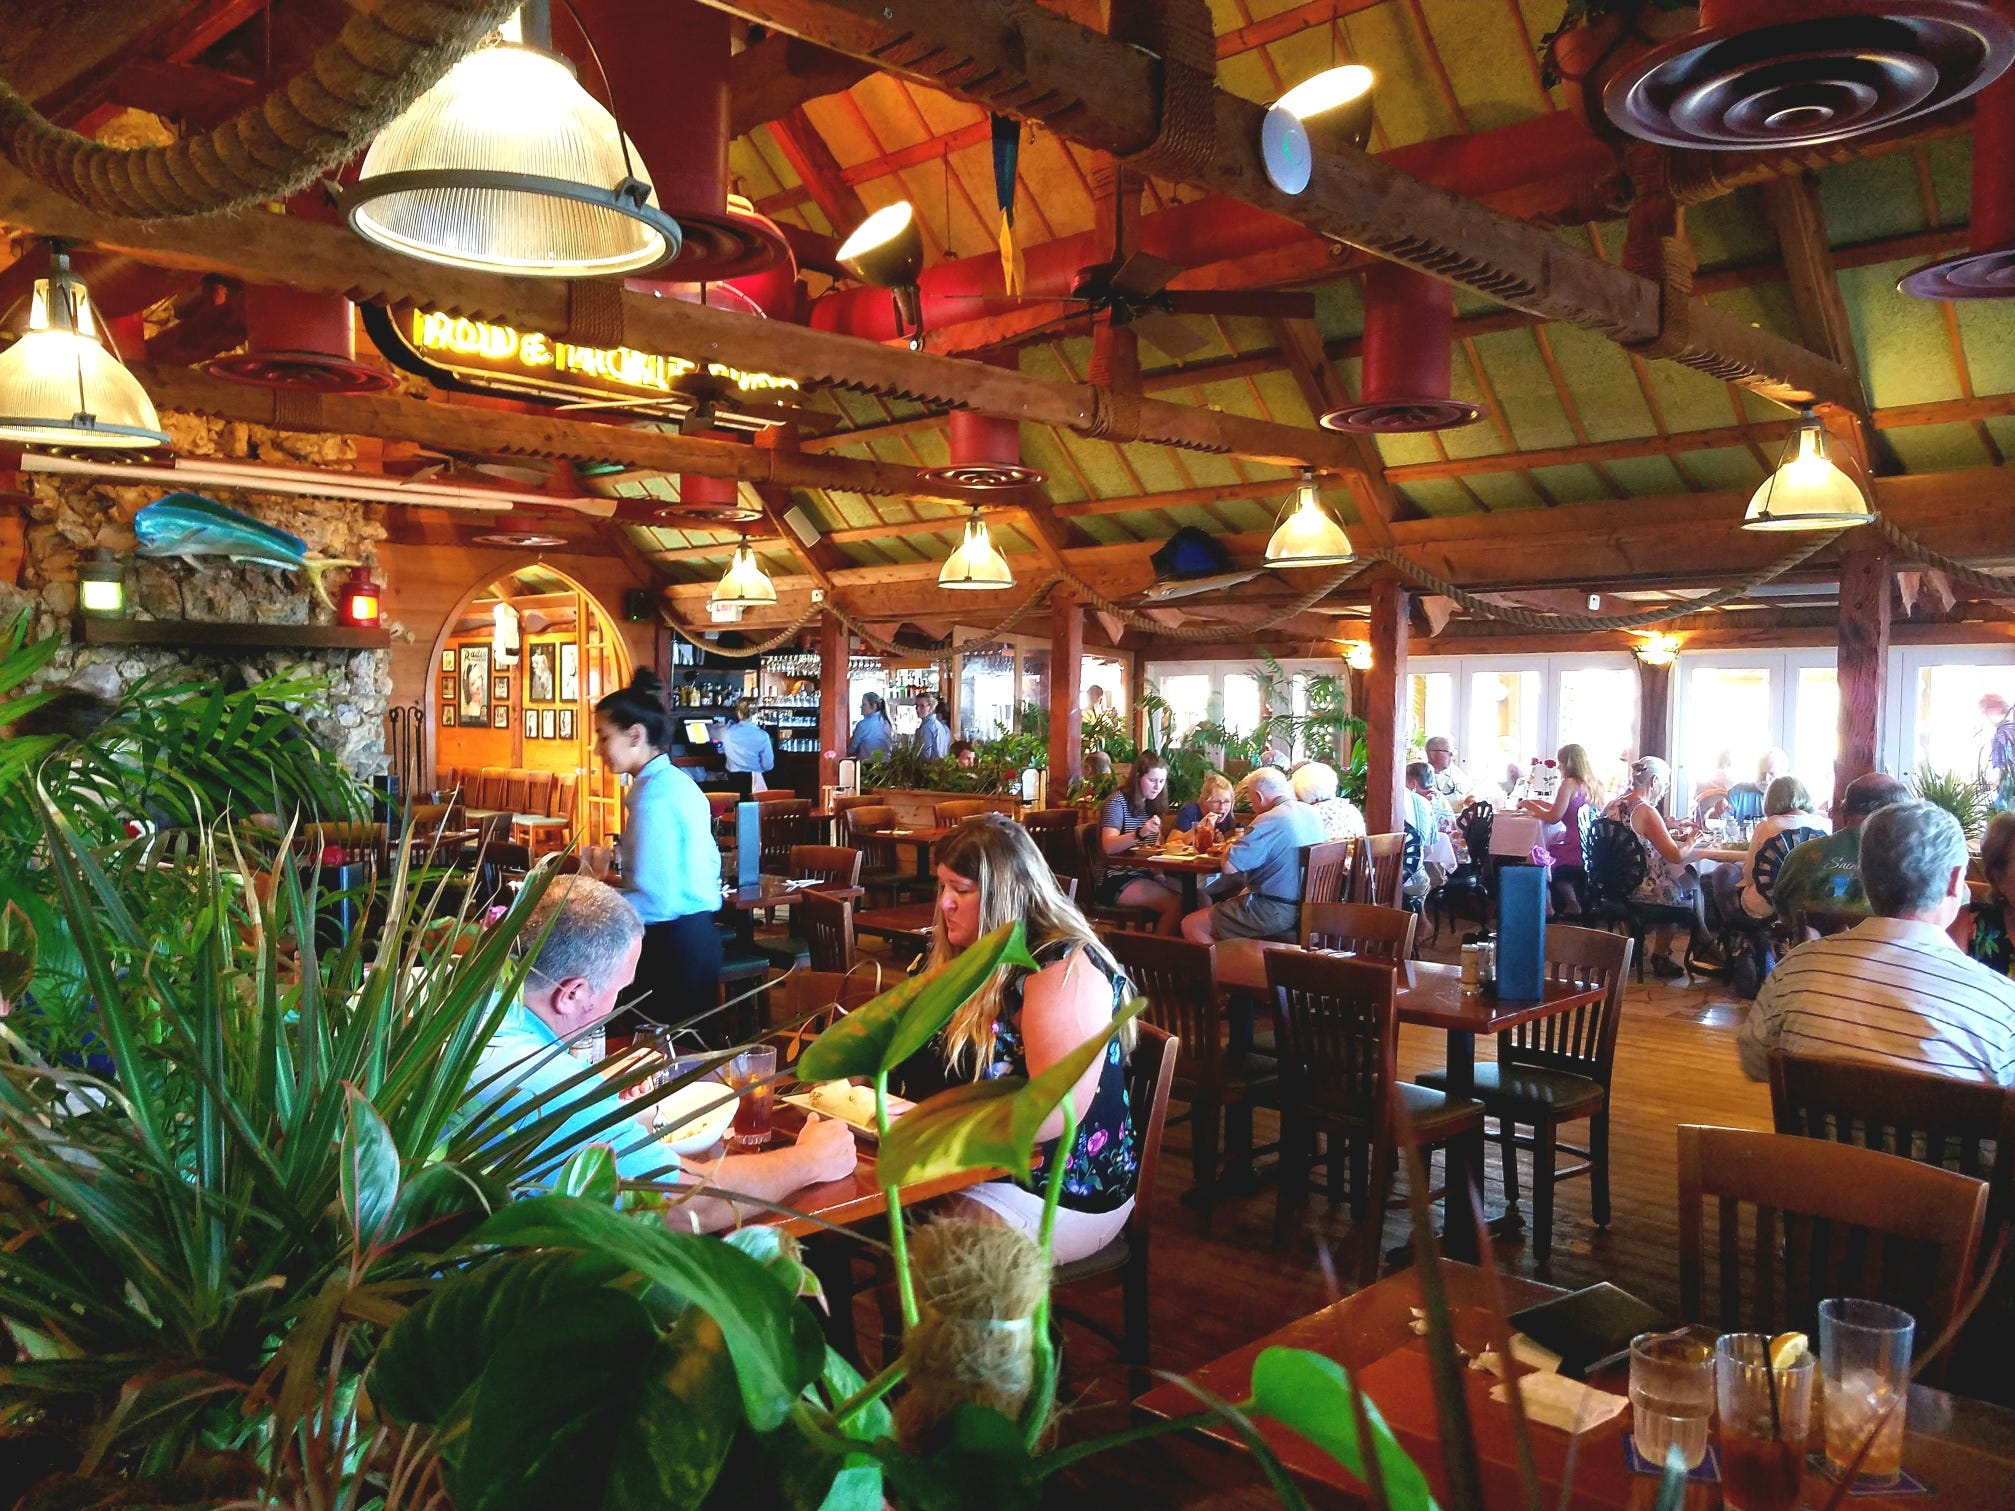 The vibrant tropical setting of the interior dining room is spacious and welcoming.